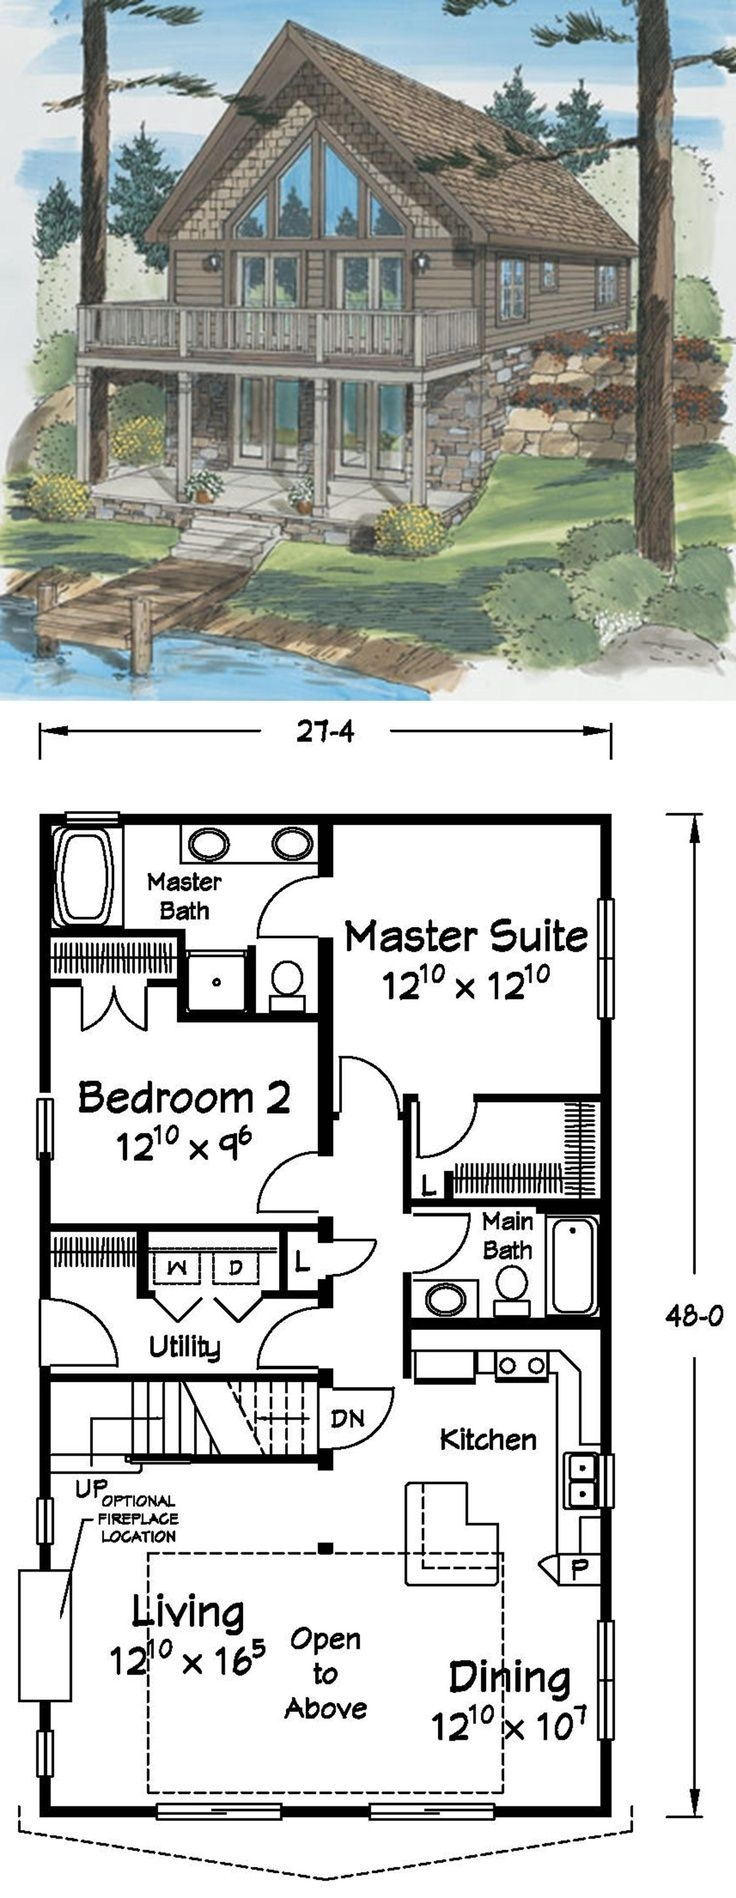 Rustic Mountain House Plans with Walkout Basement Lovely This Cape Chalet is the Perfect Lake Front Home with Spacious Open